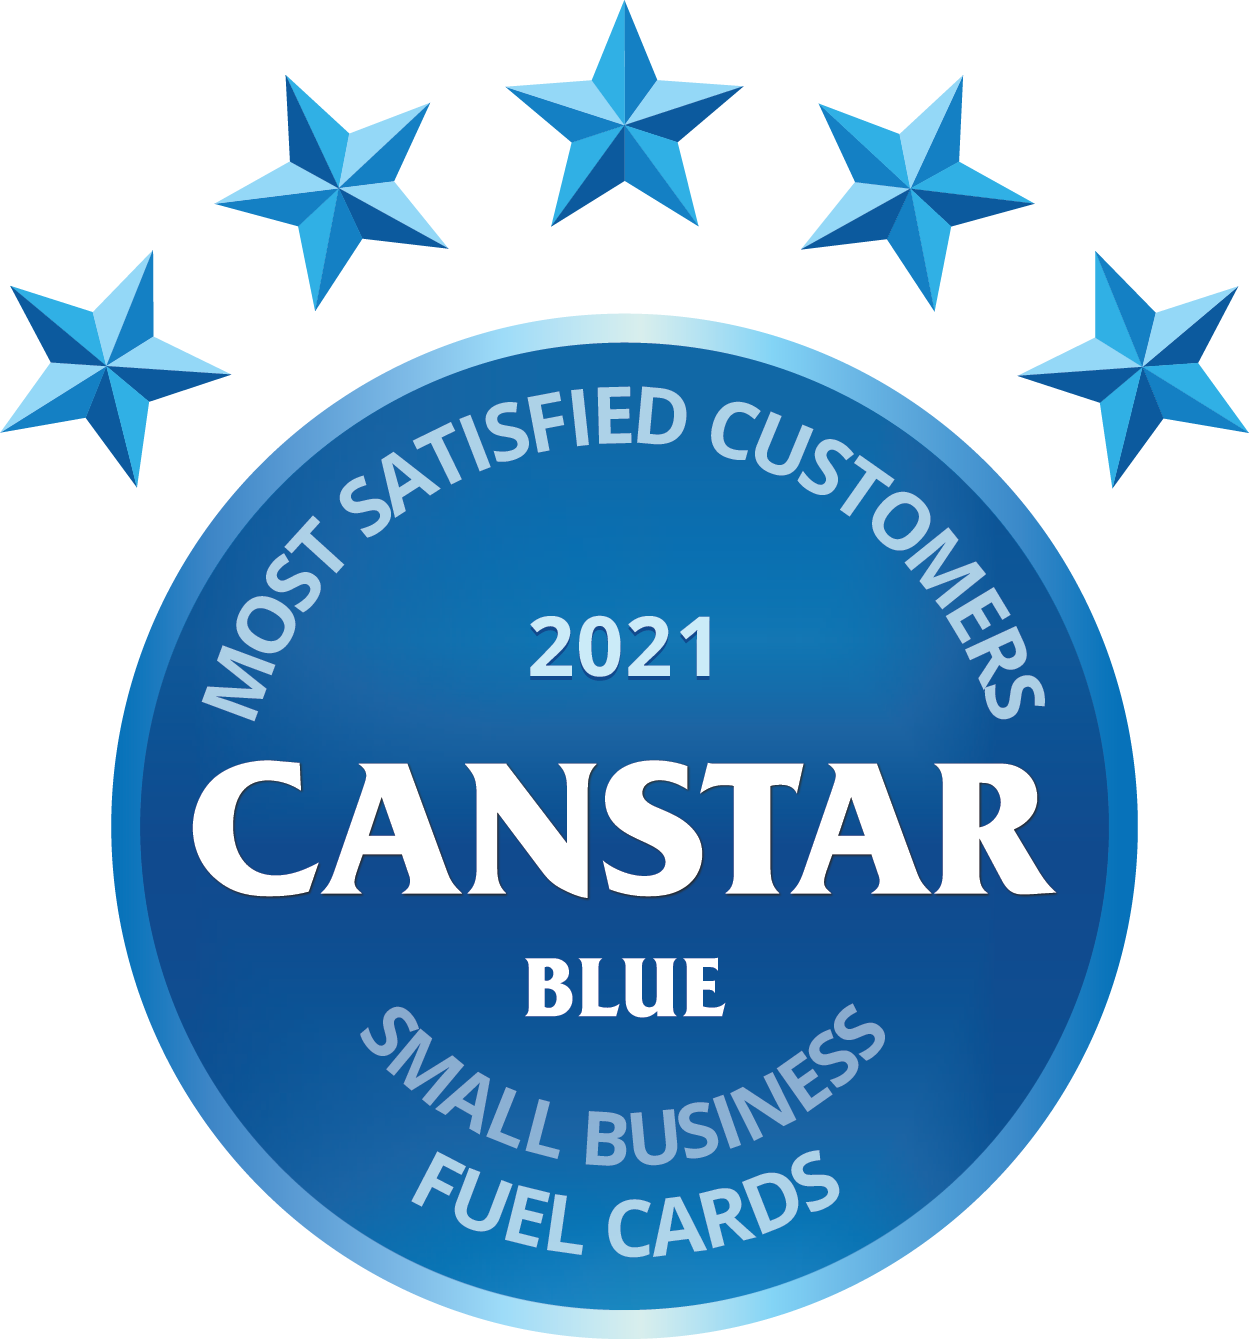 most satisfied customers fuel cards